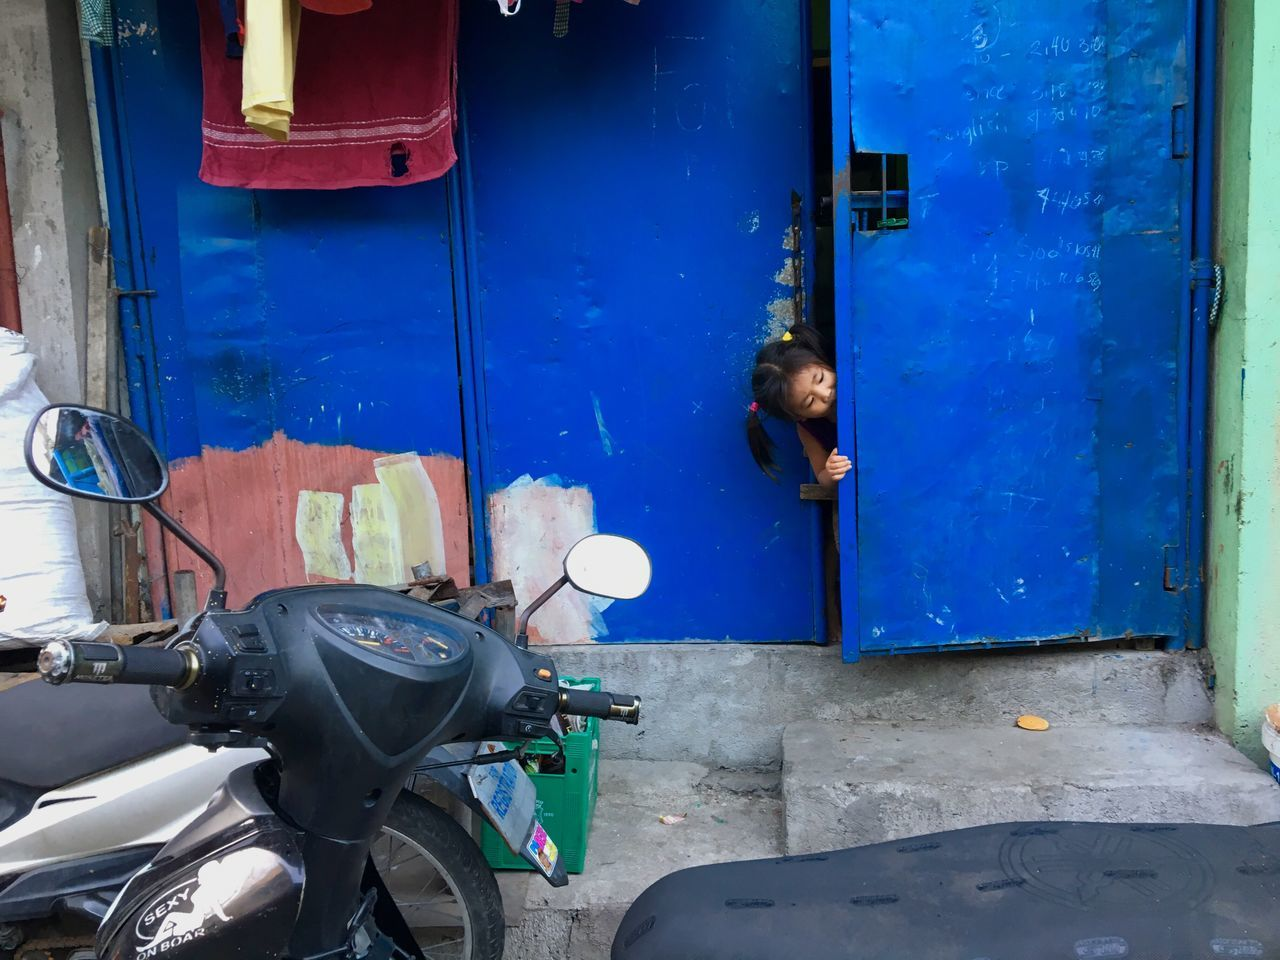 A girl peeks behind an iron gate at Santo Nino neighbourhood in Taguig, Metro Manila. Blue One Person Mode Of Transport Stationary Architecture Built Structure Real People Outdoors Day One Man Only People Little Girl Peekaboo Iron Gate Blue Gate Philippines Taguig Manila Street Photography Peeking Peeking Out